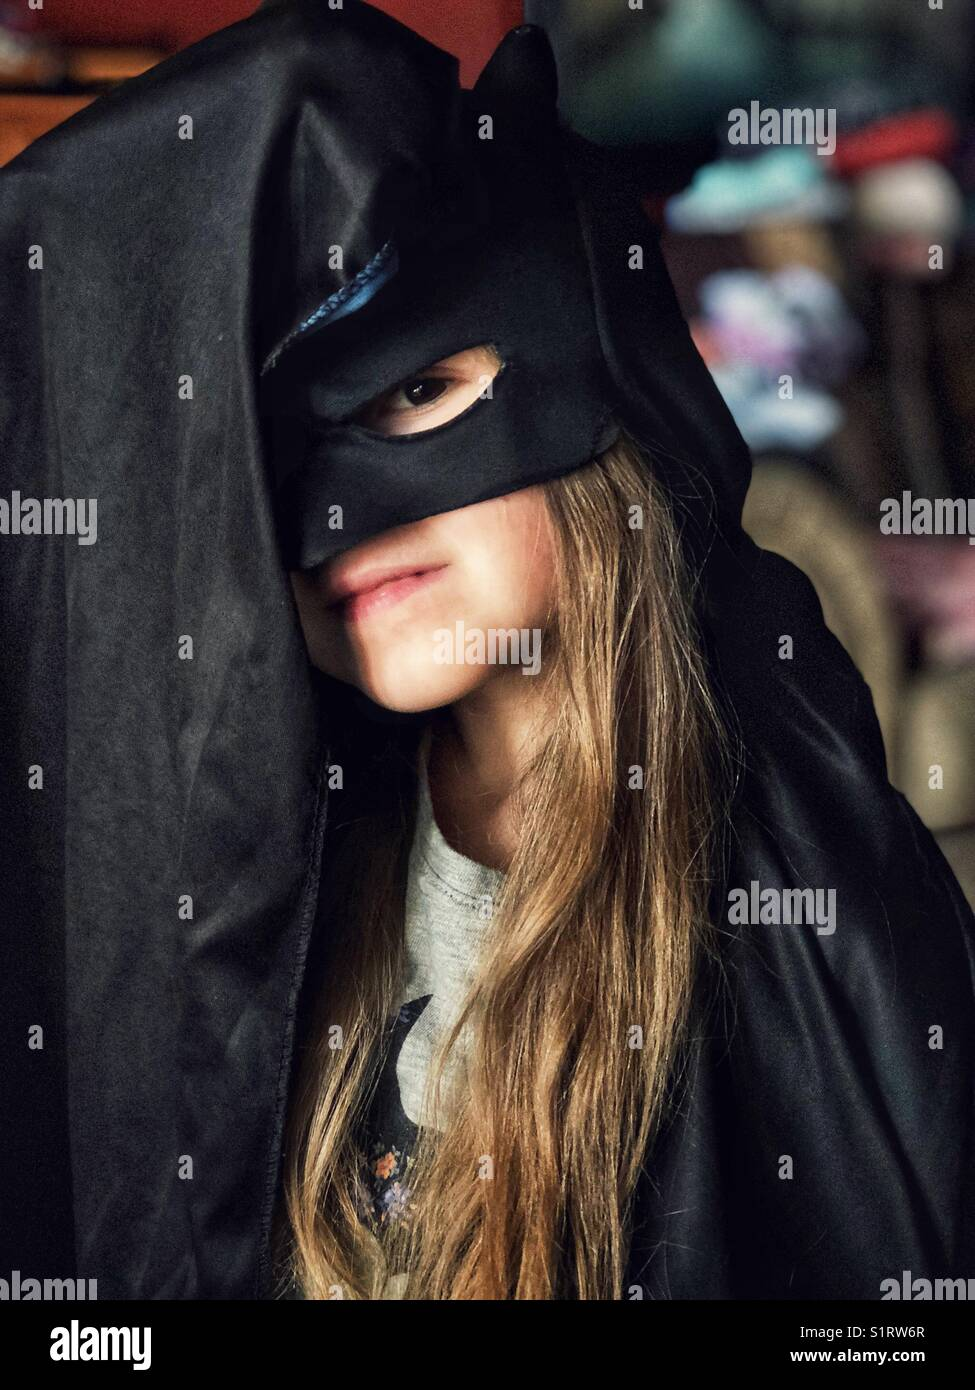 5 year old girl dressed up in Batman costume - Stock Image